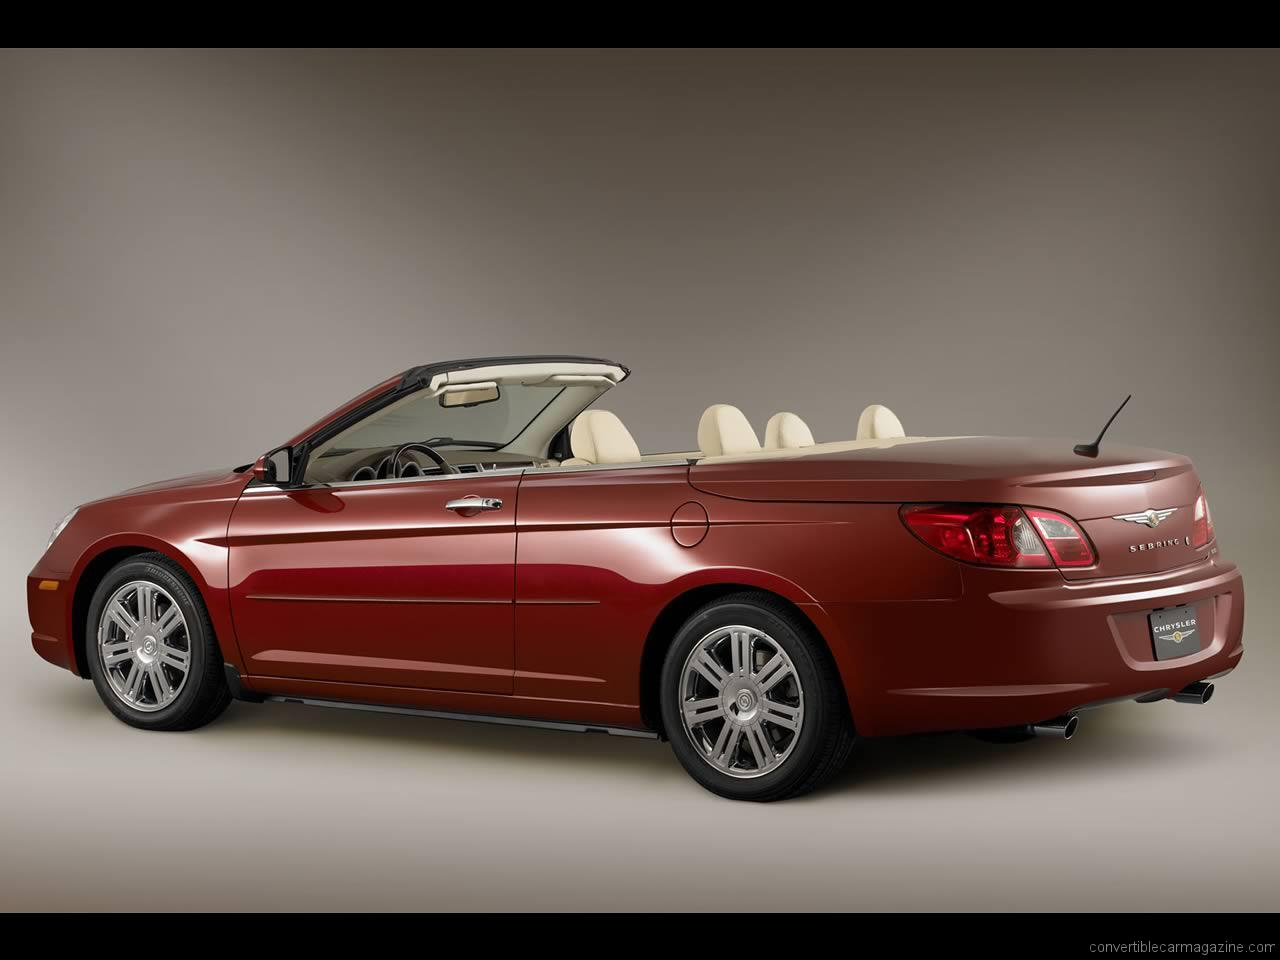 Convertible chrysler sebring forum #1